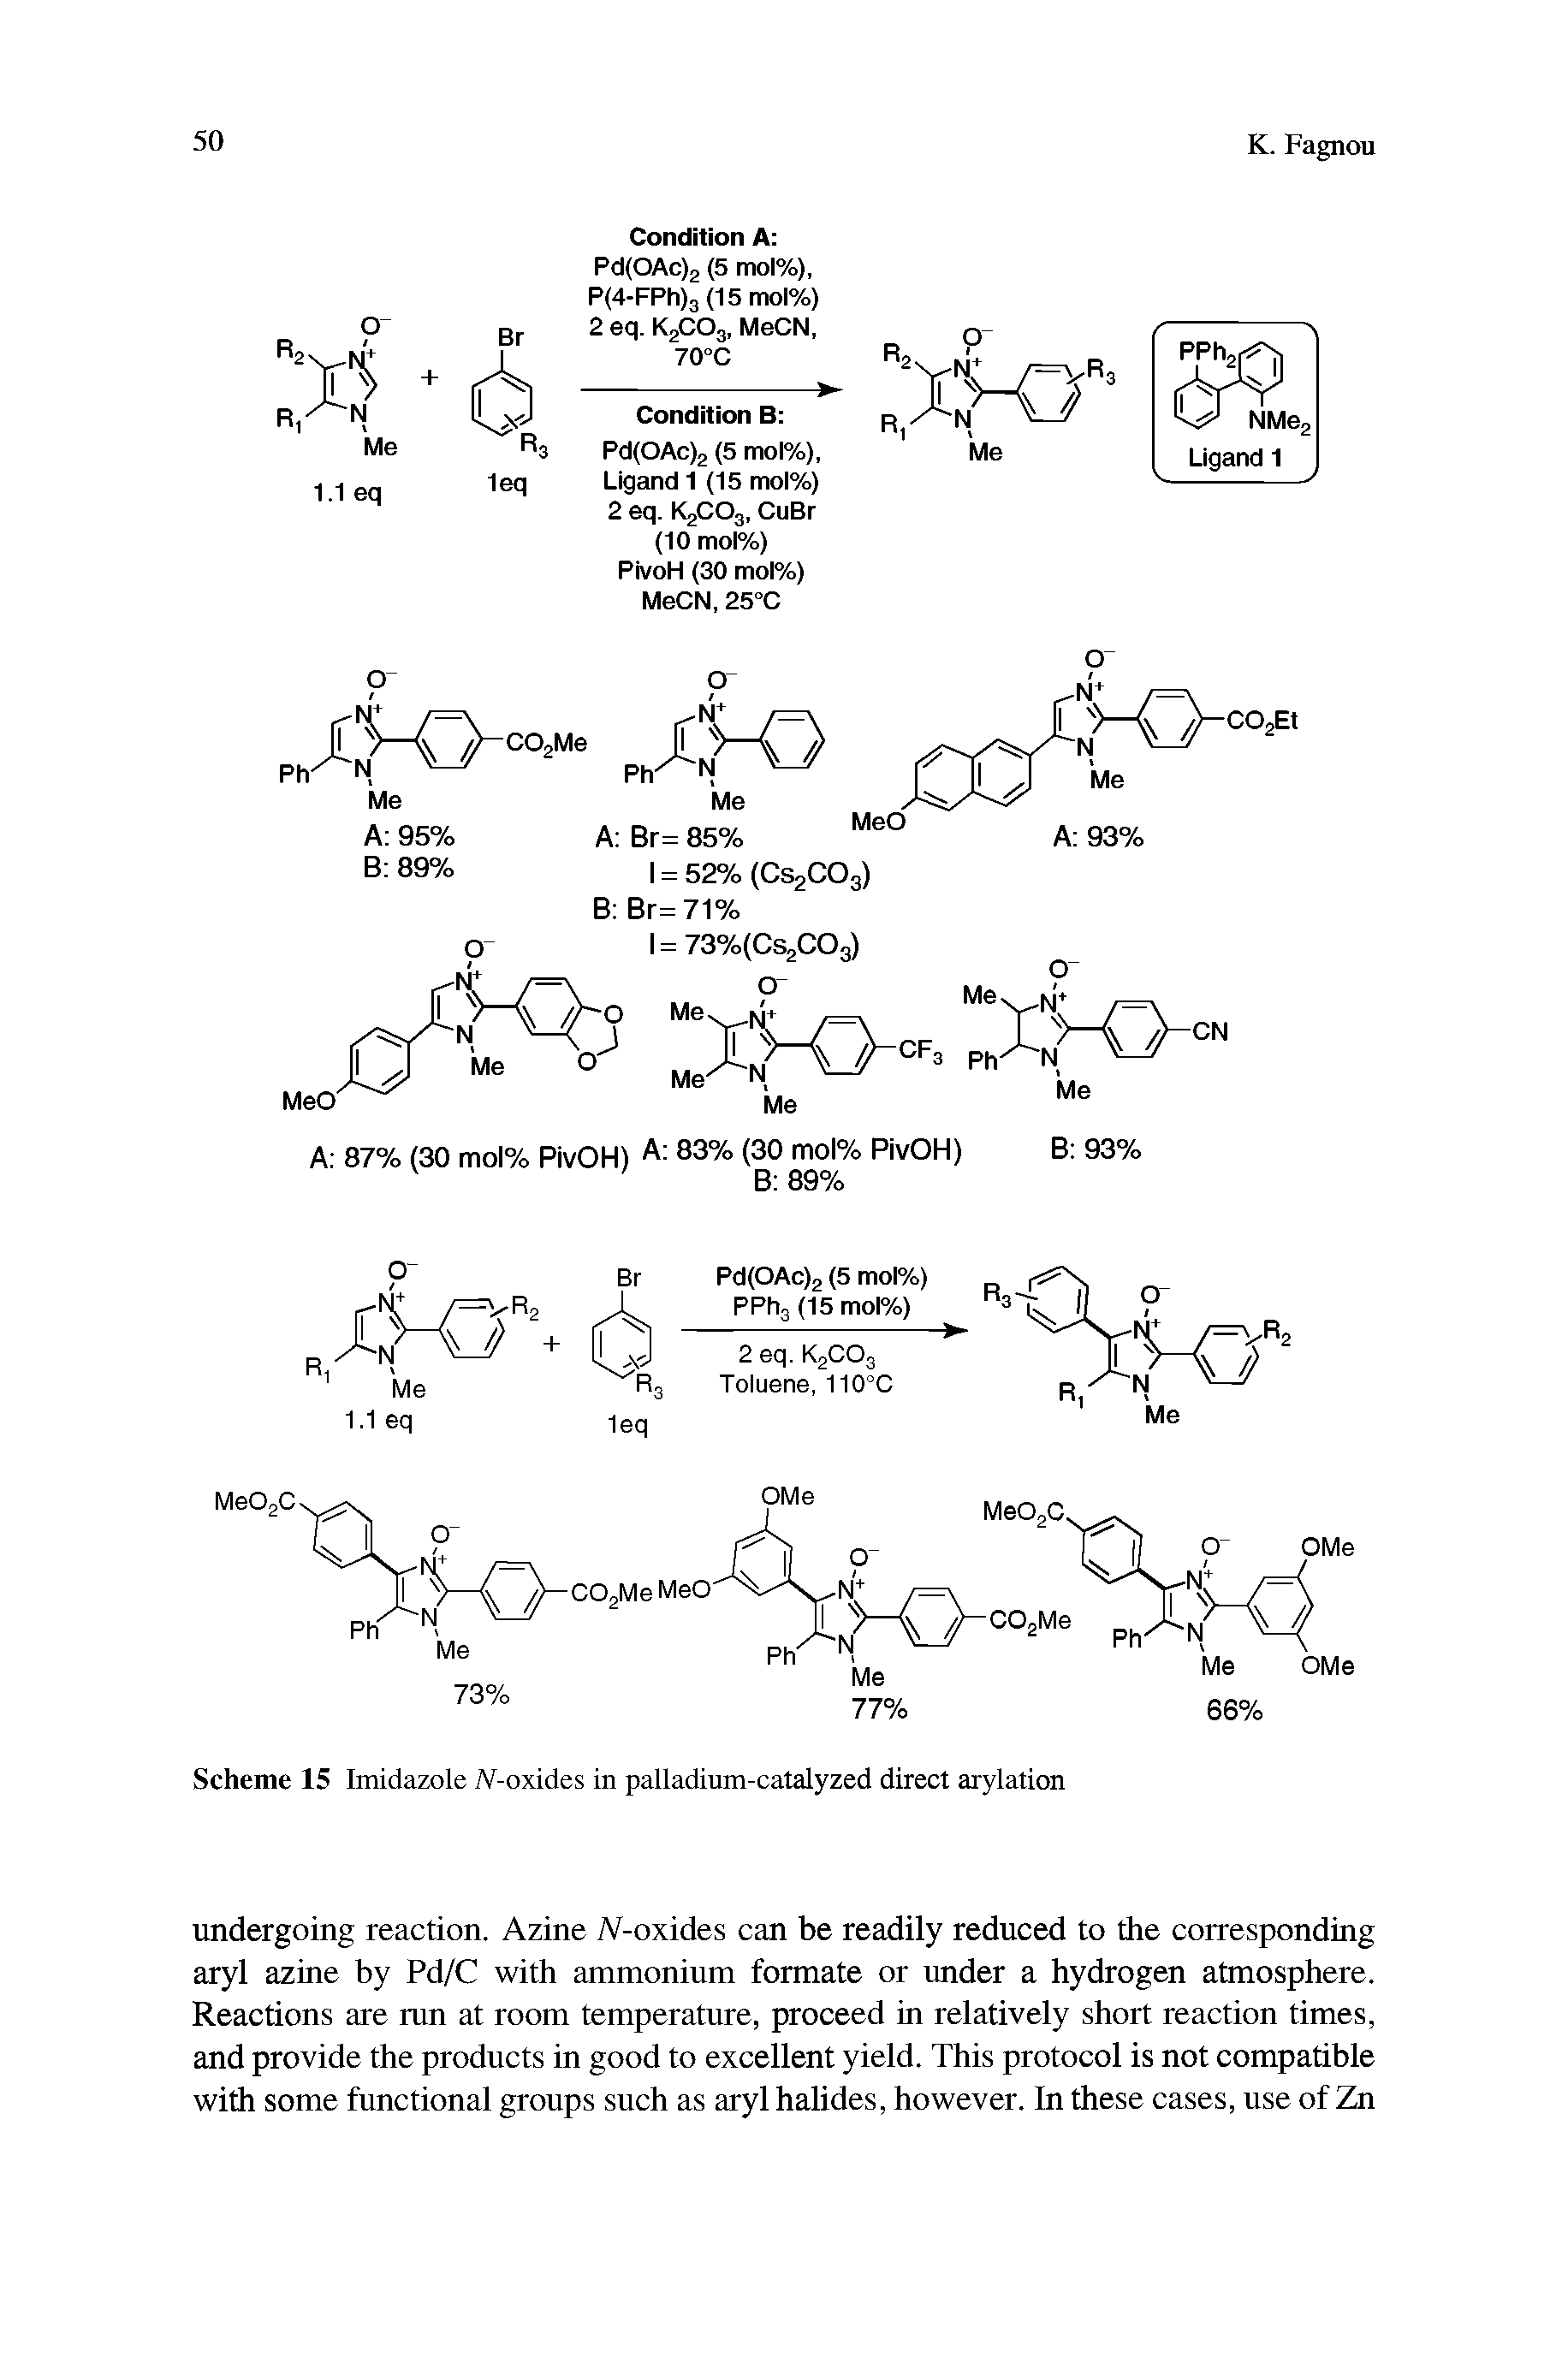 "Scheme 15 Imidazole (V-oxides in <a href=""/info/palladium_catalyzed"">palladium-catalyzed</a> direct arylation"